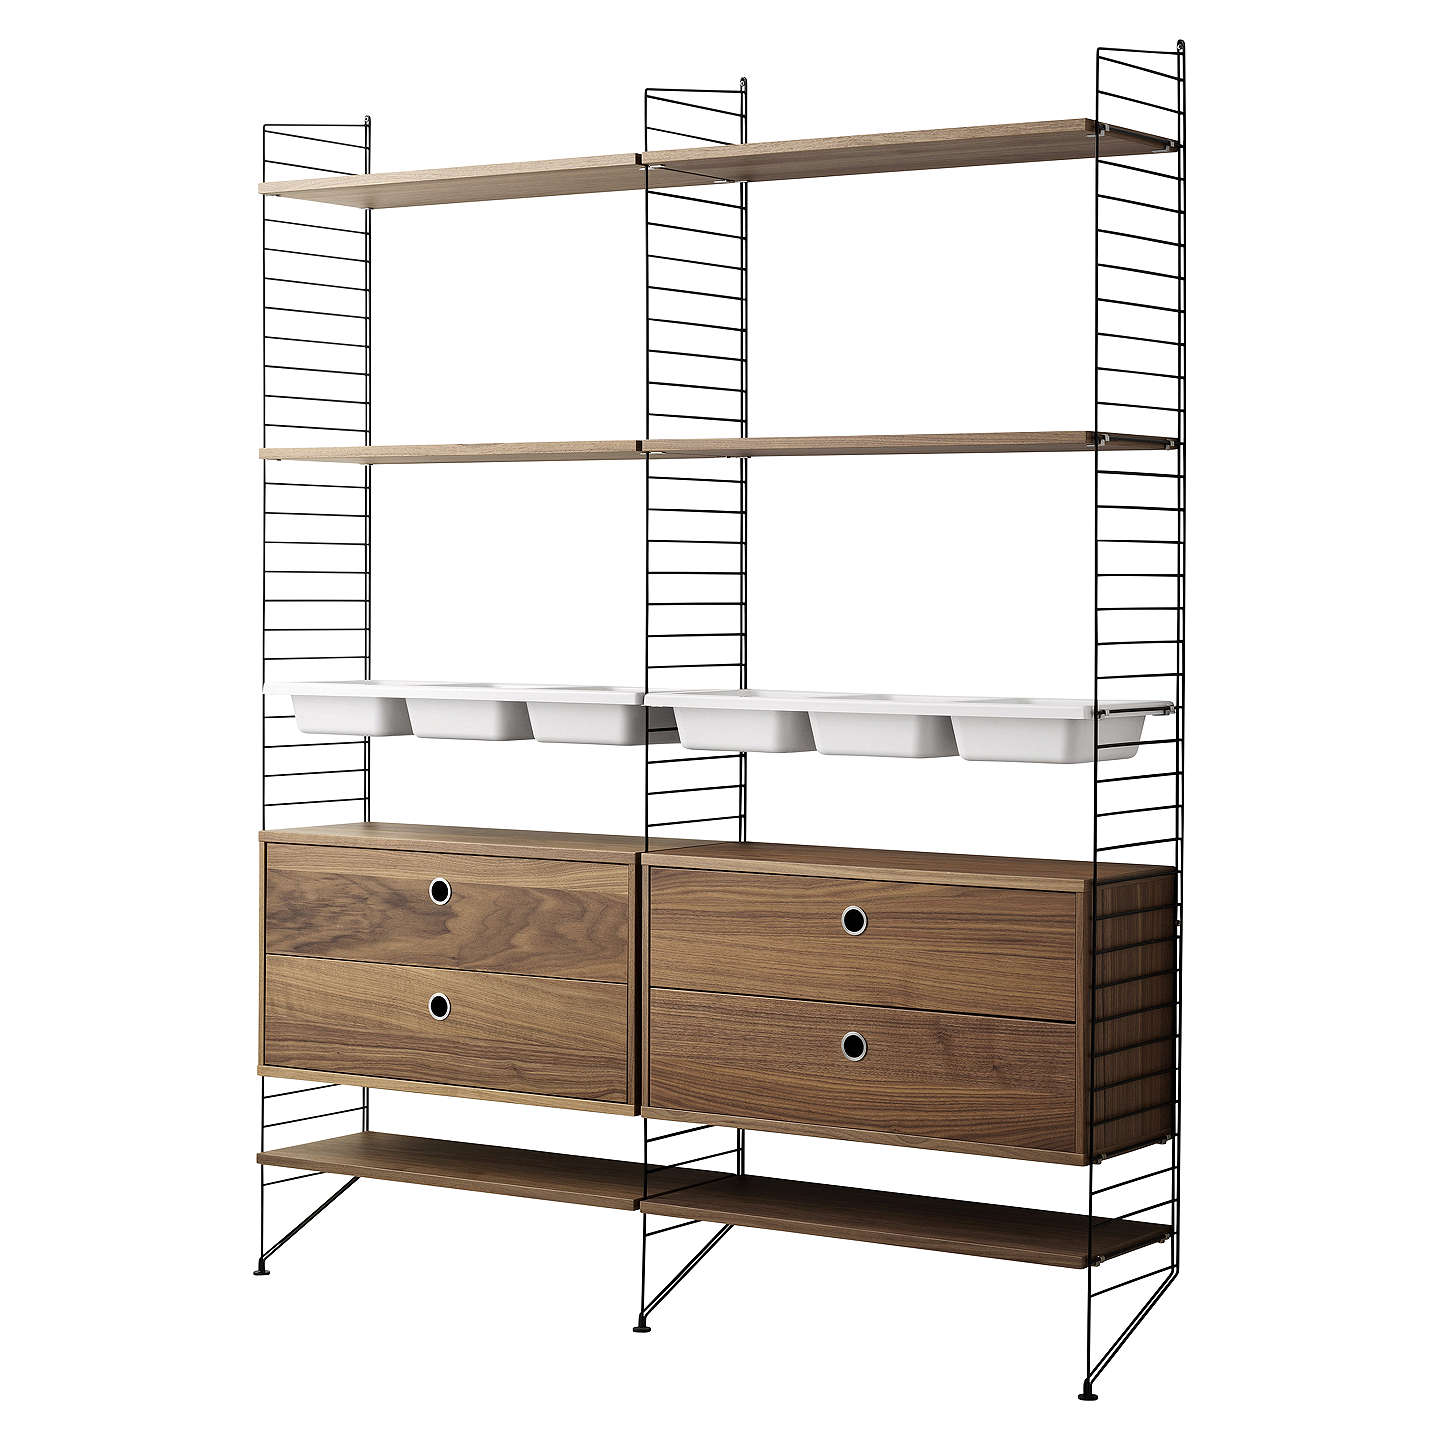 alex ekby white wall spr ikea shelves shelf products drawers gb storage with drawer black cm furniture valter en